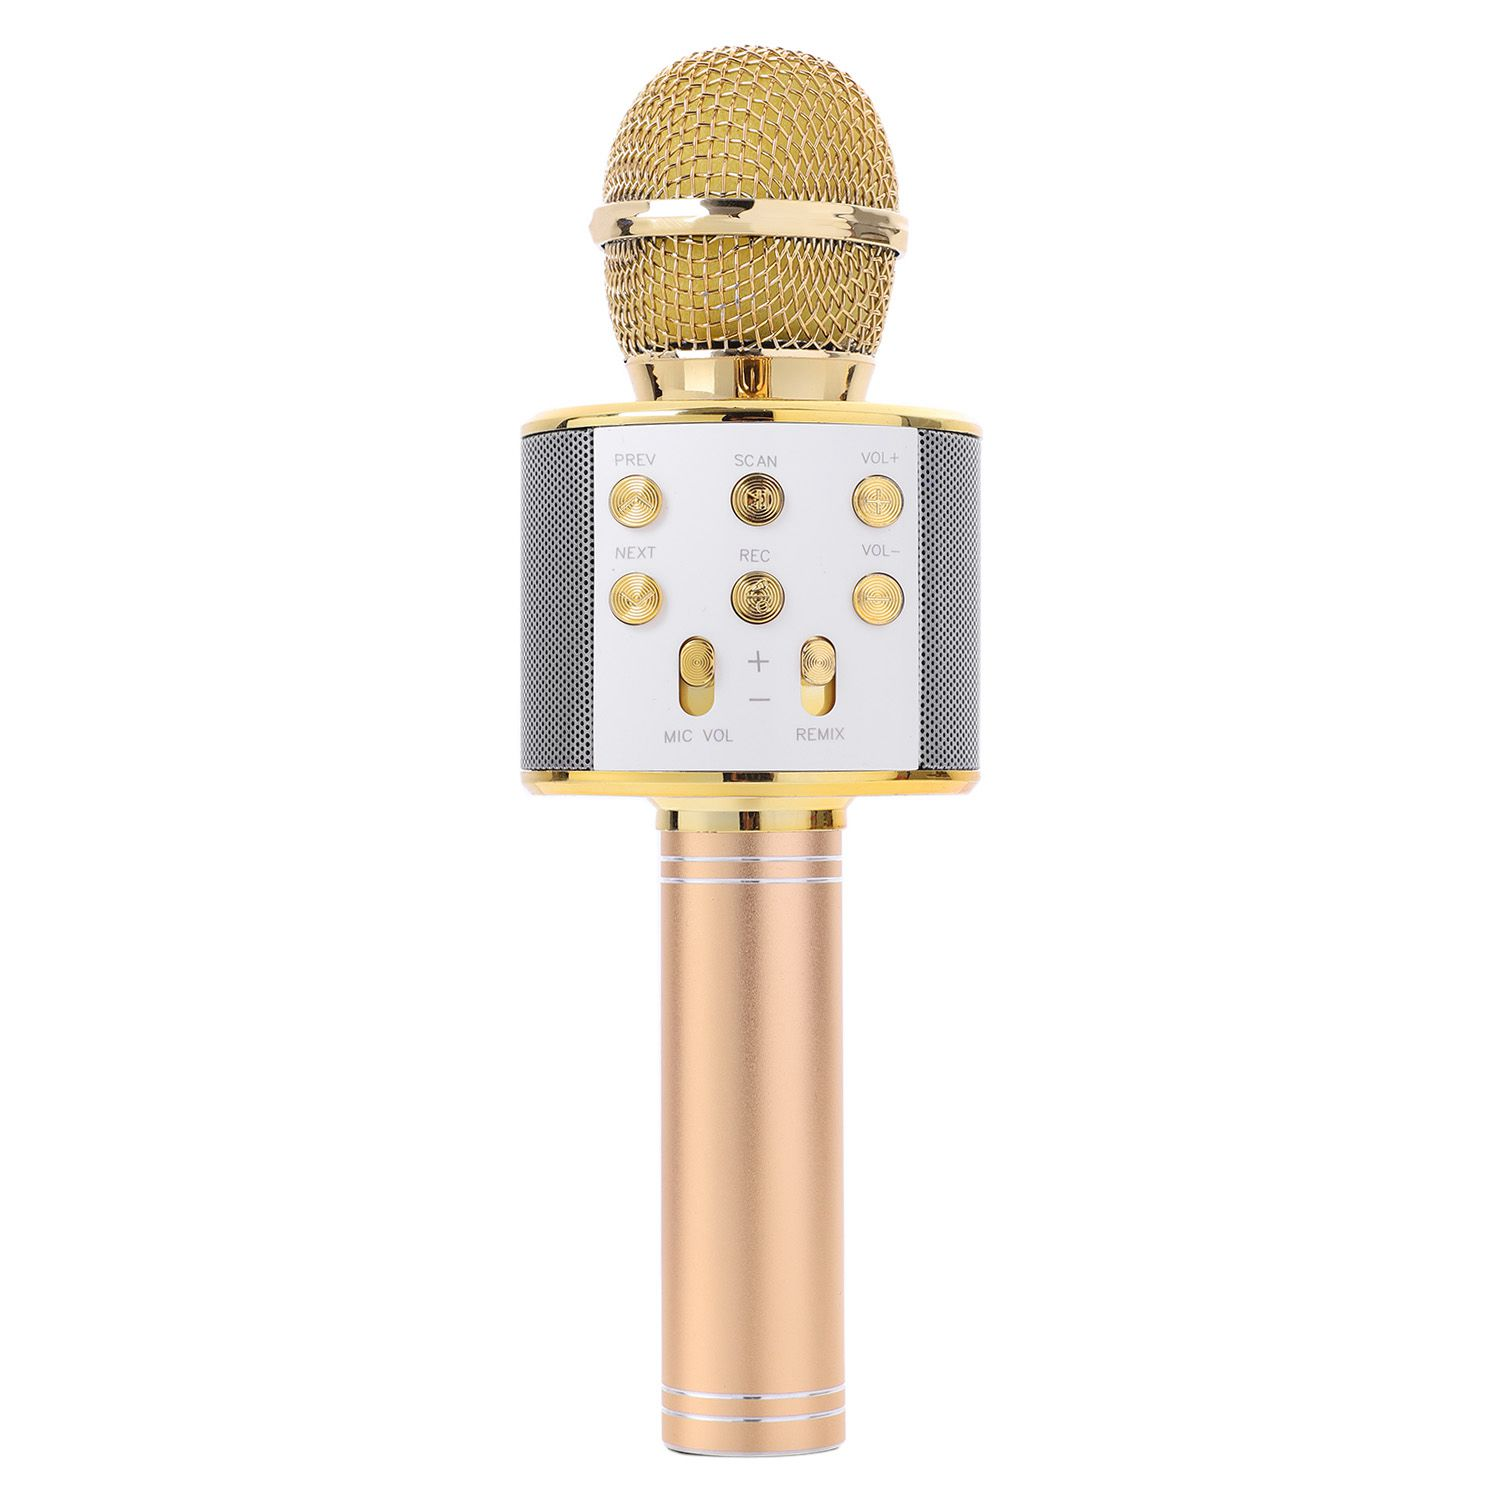 handheld bluetooth wireless karaoke microphone phone player mic speaker record music ktv. Black Bedroom Furniture Sets. Home Design Ideas